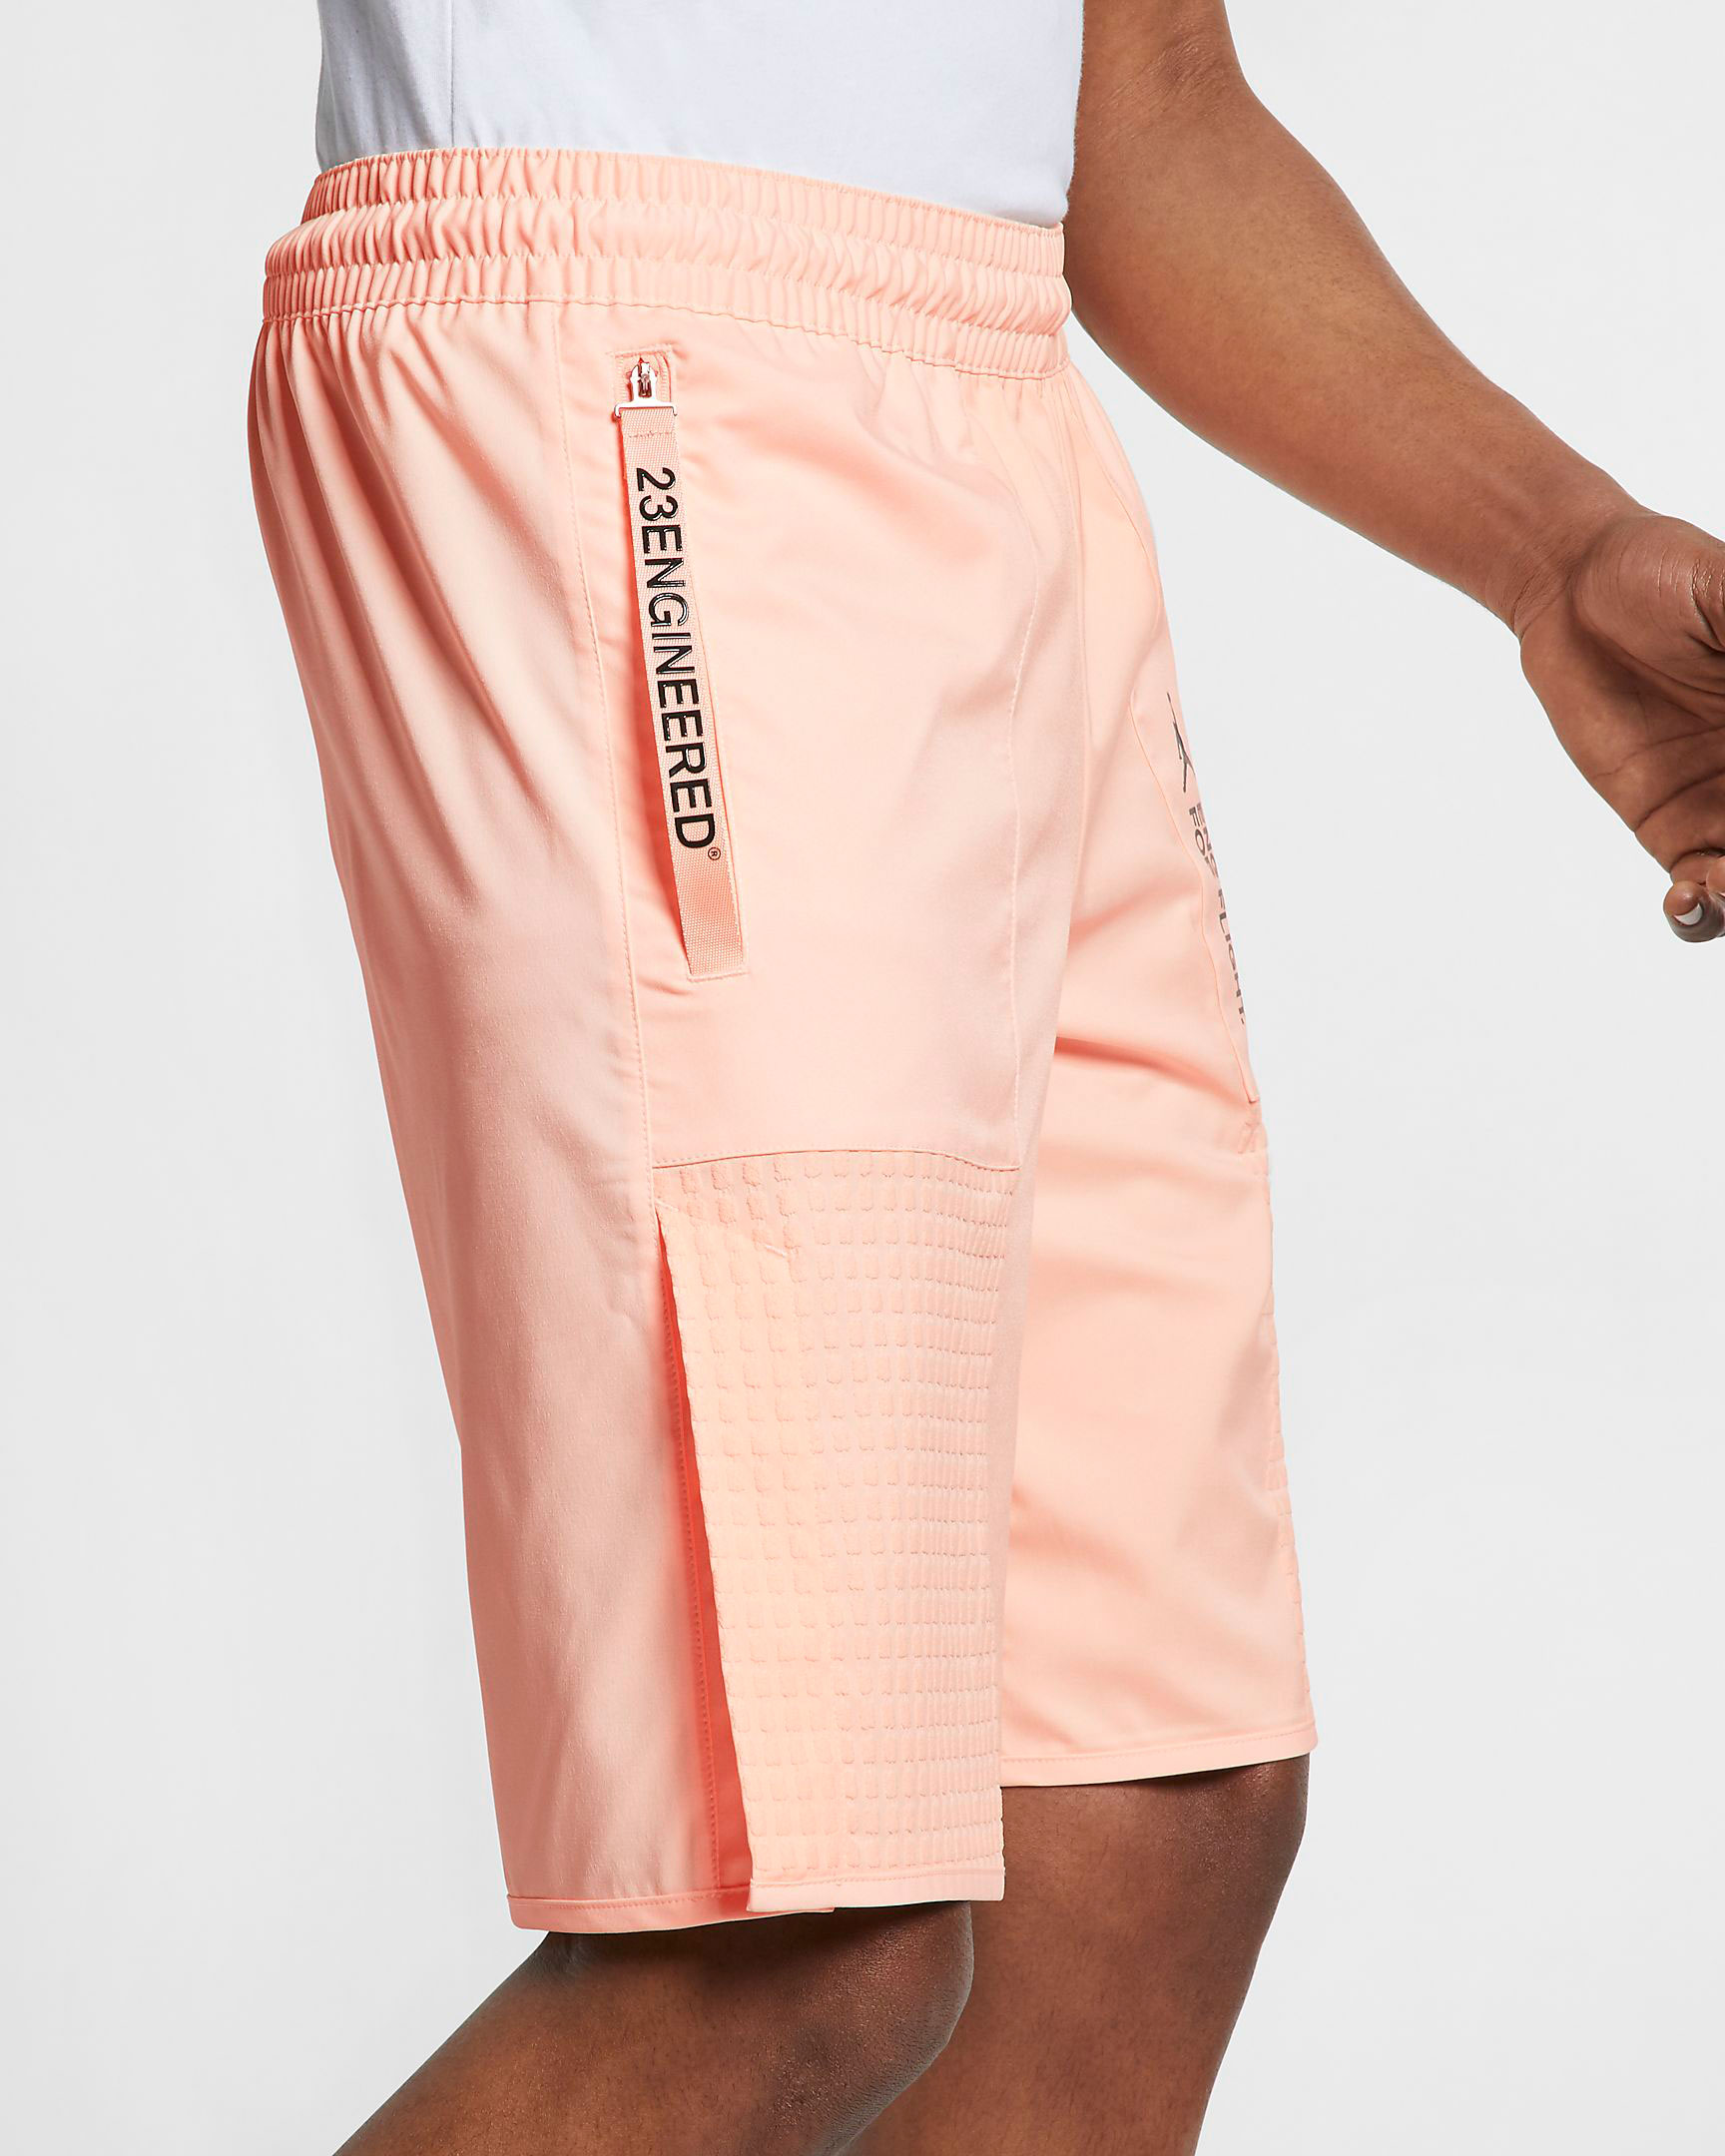 air-jordan-1-crimson-tint-shorts-4